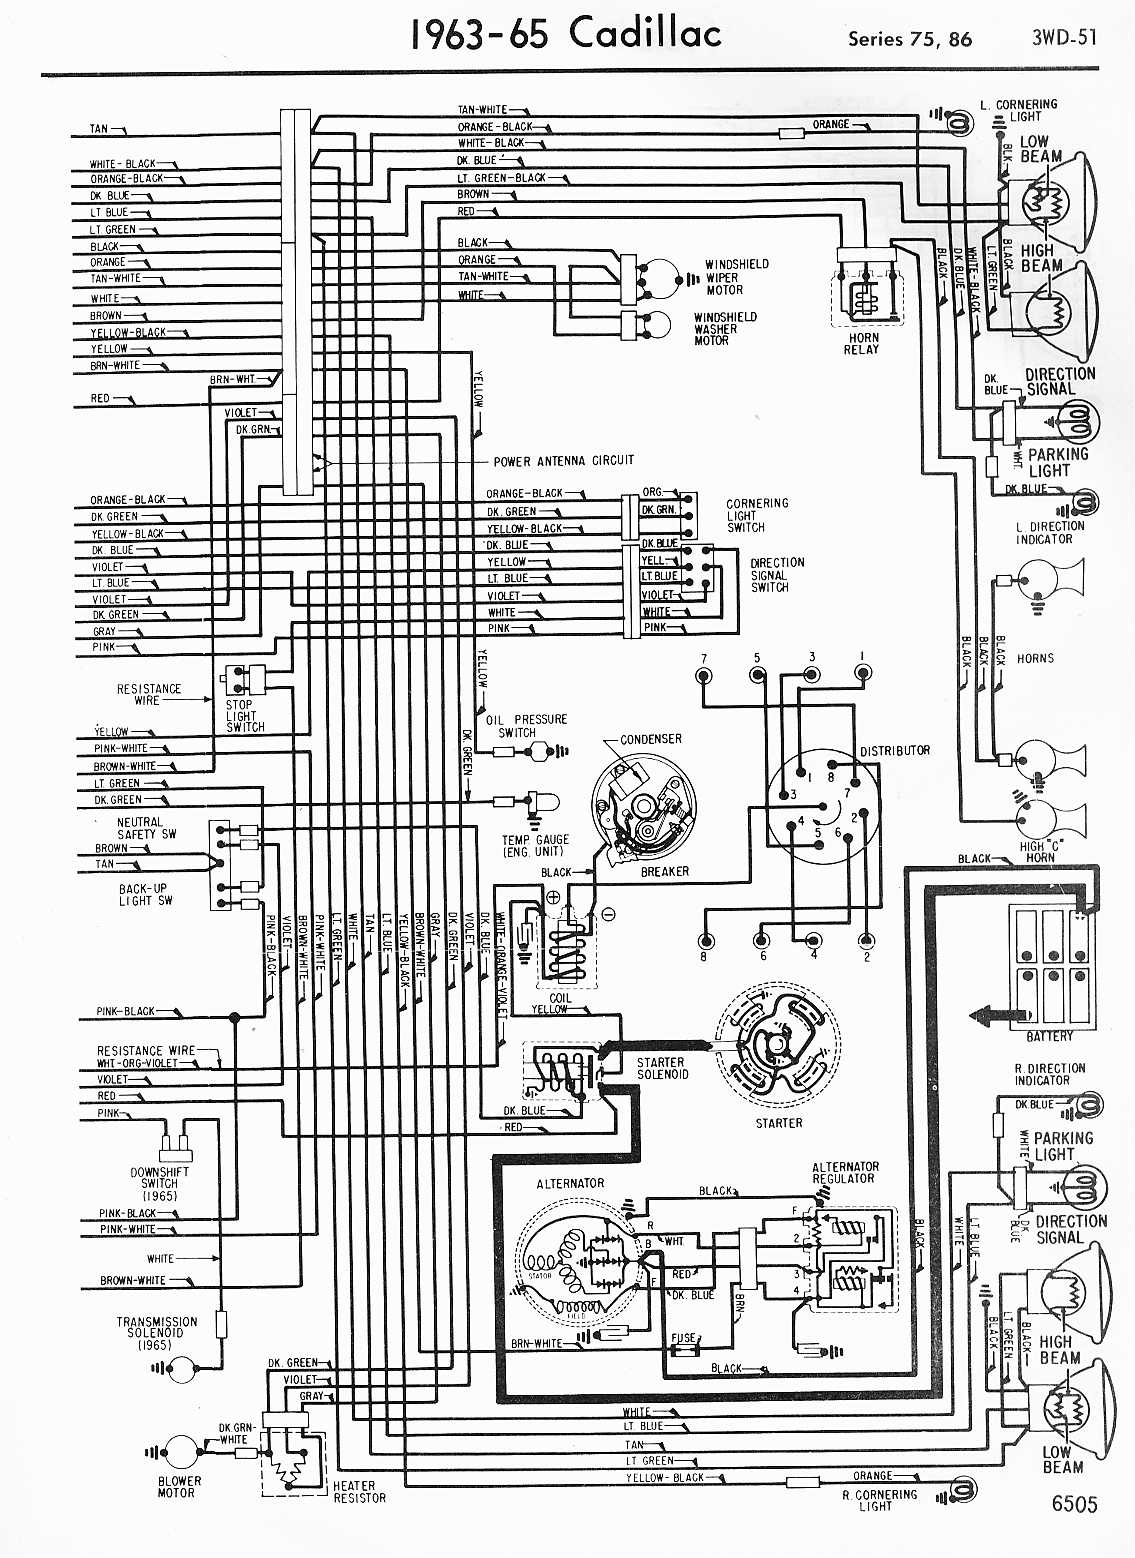 2000 Cadillac Catera Wiring Diagram Excellent Electrical Engine 1997 Fuse Box Library Rh 12 Skriptoase De 2001 Vacuum